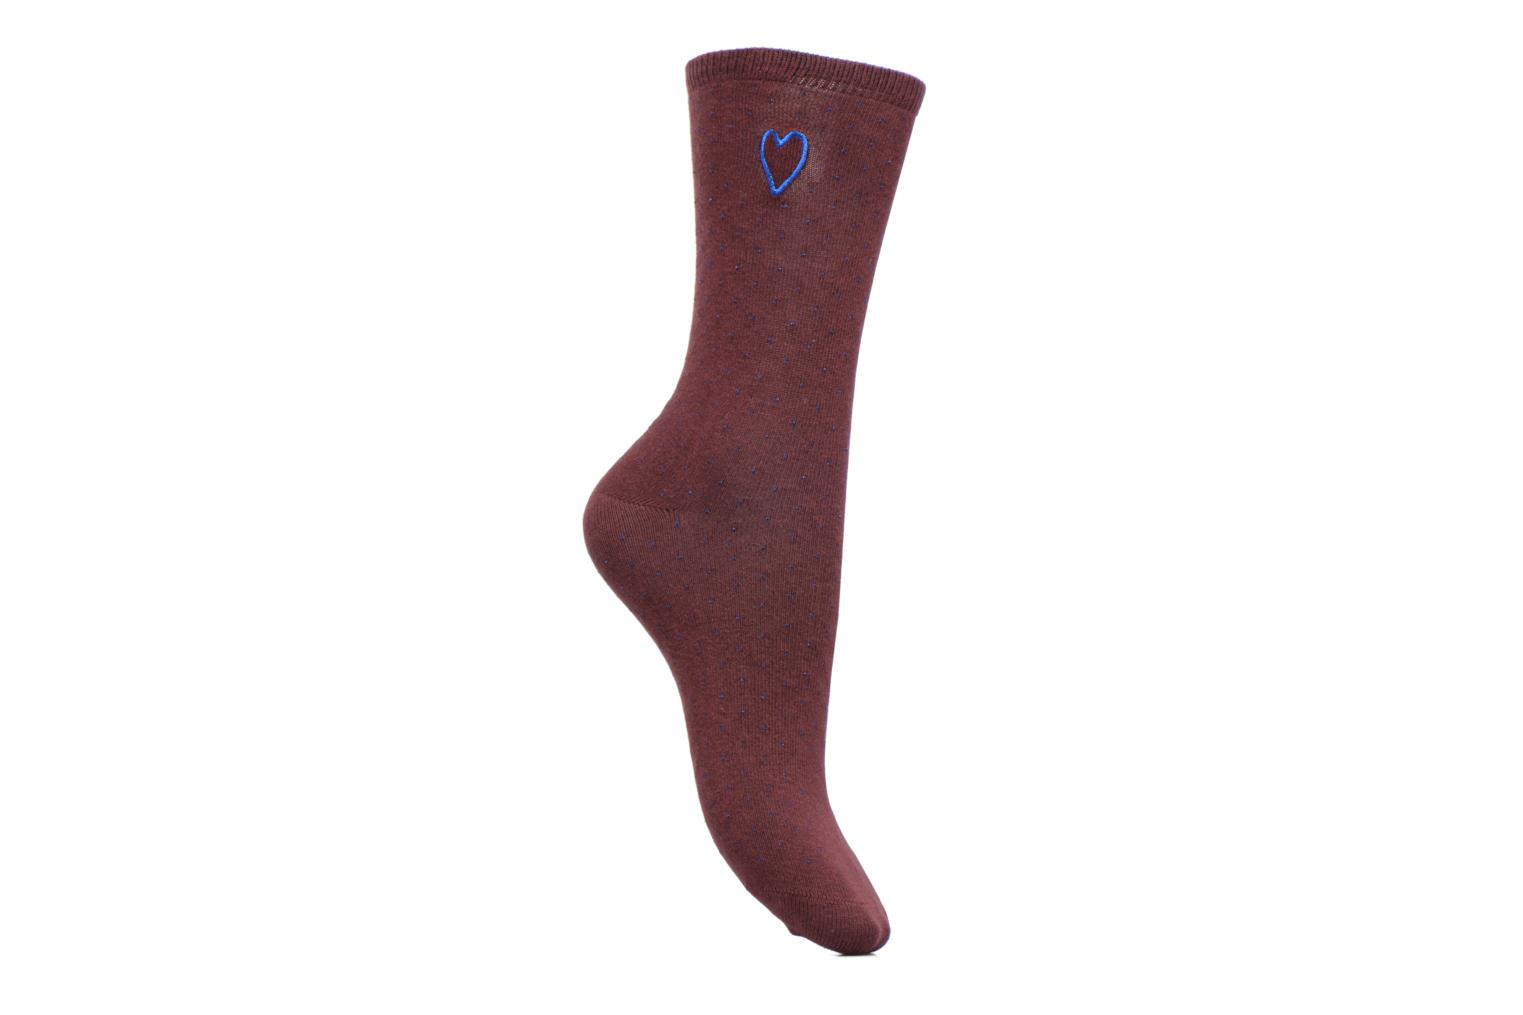 Chaussettes Angie Embroidey PROY-NBLA